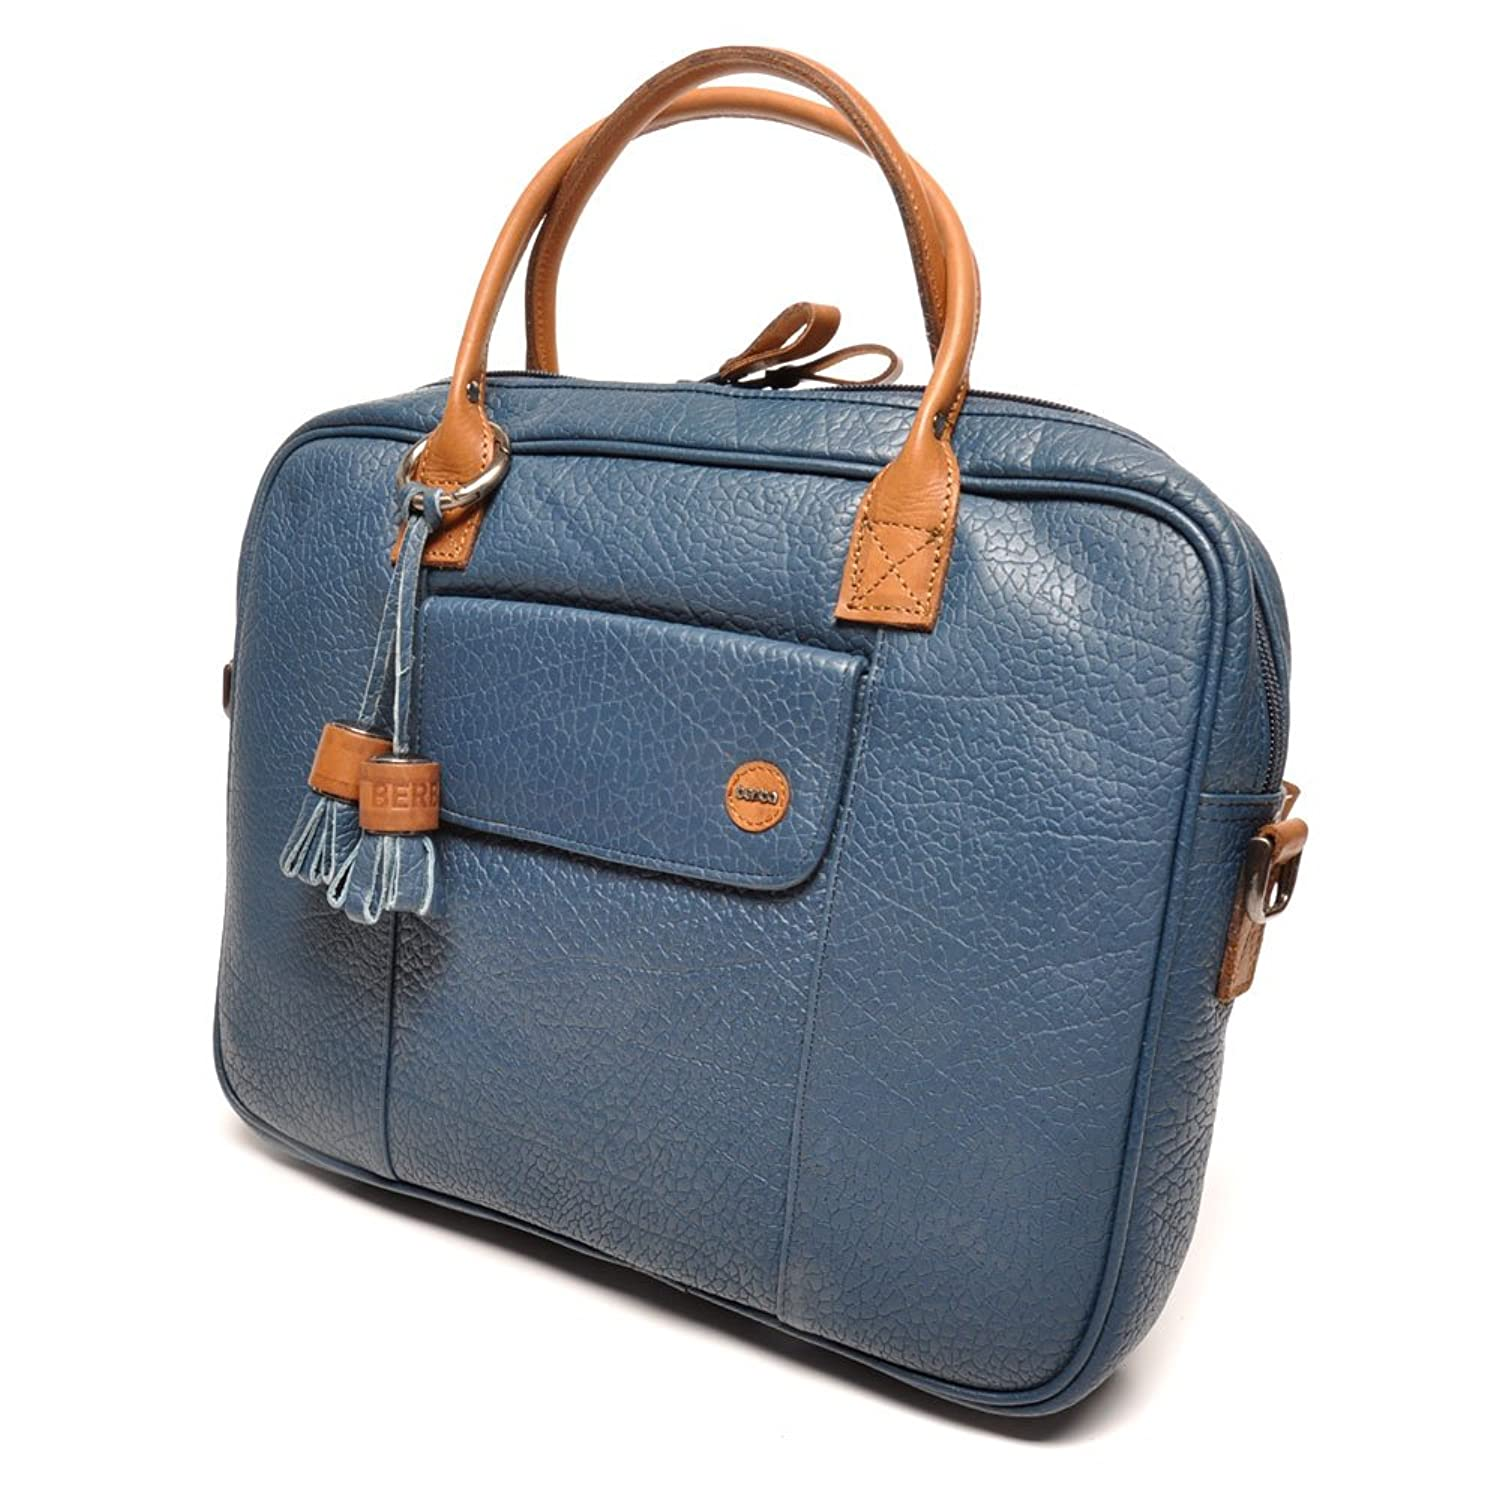 berba Chamonix 988 Business satchel in blue